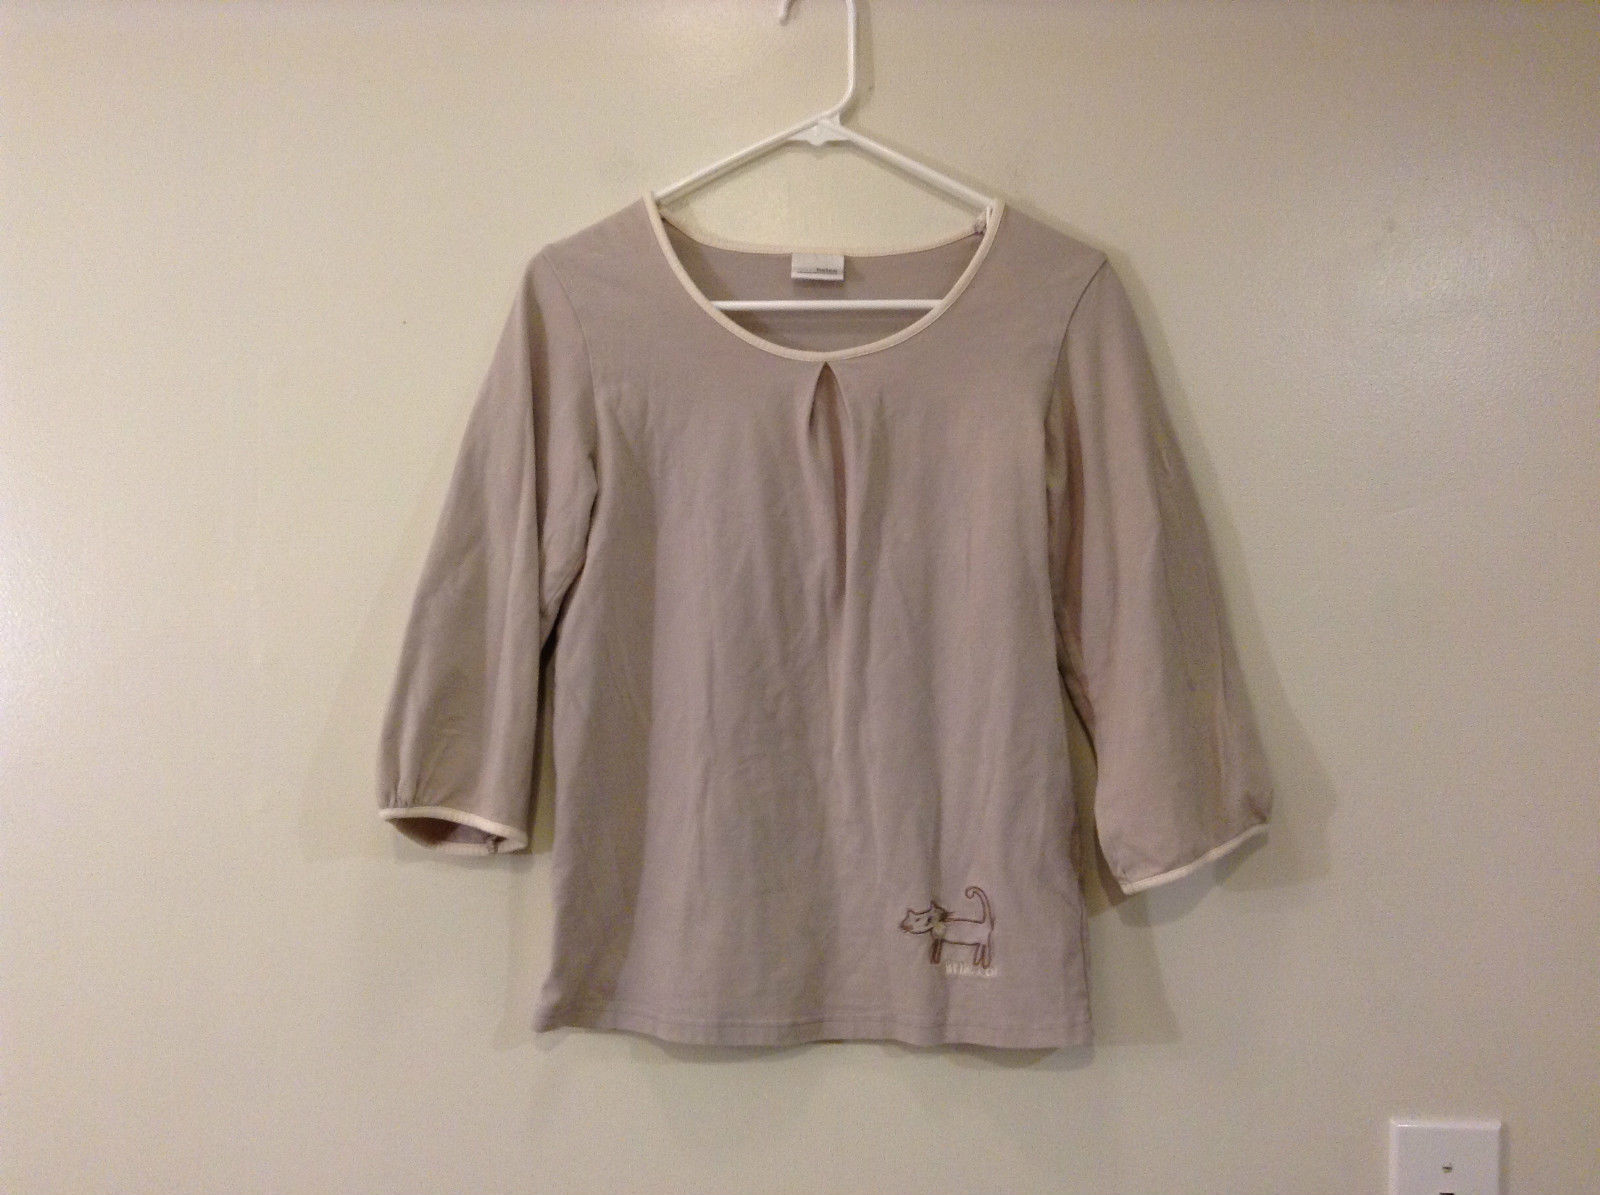 Miss Helen Long Sleeve 100 Percent Cotton Light Gray White Trim Top Size Small